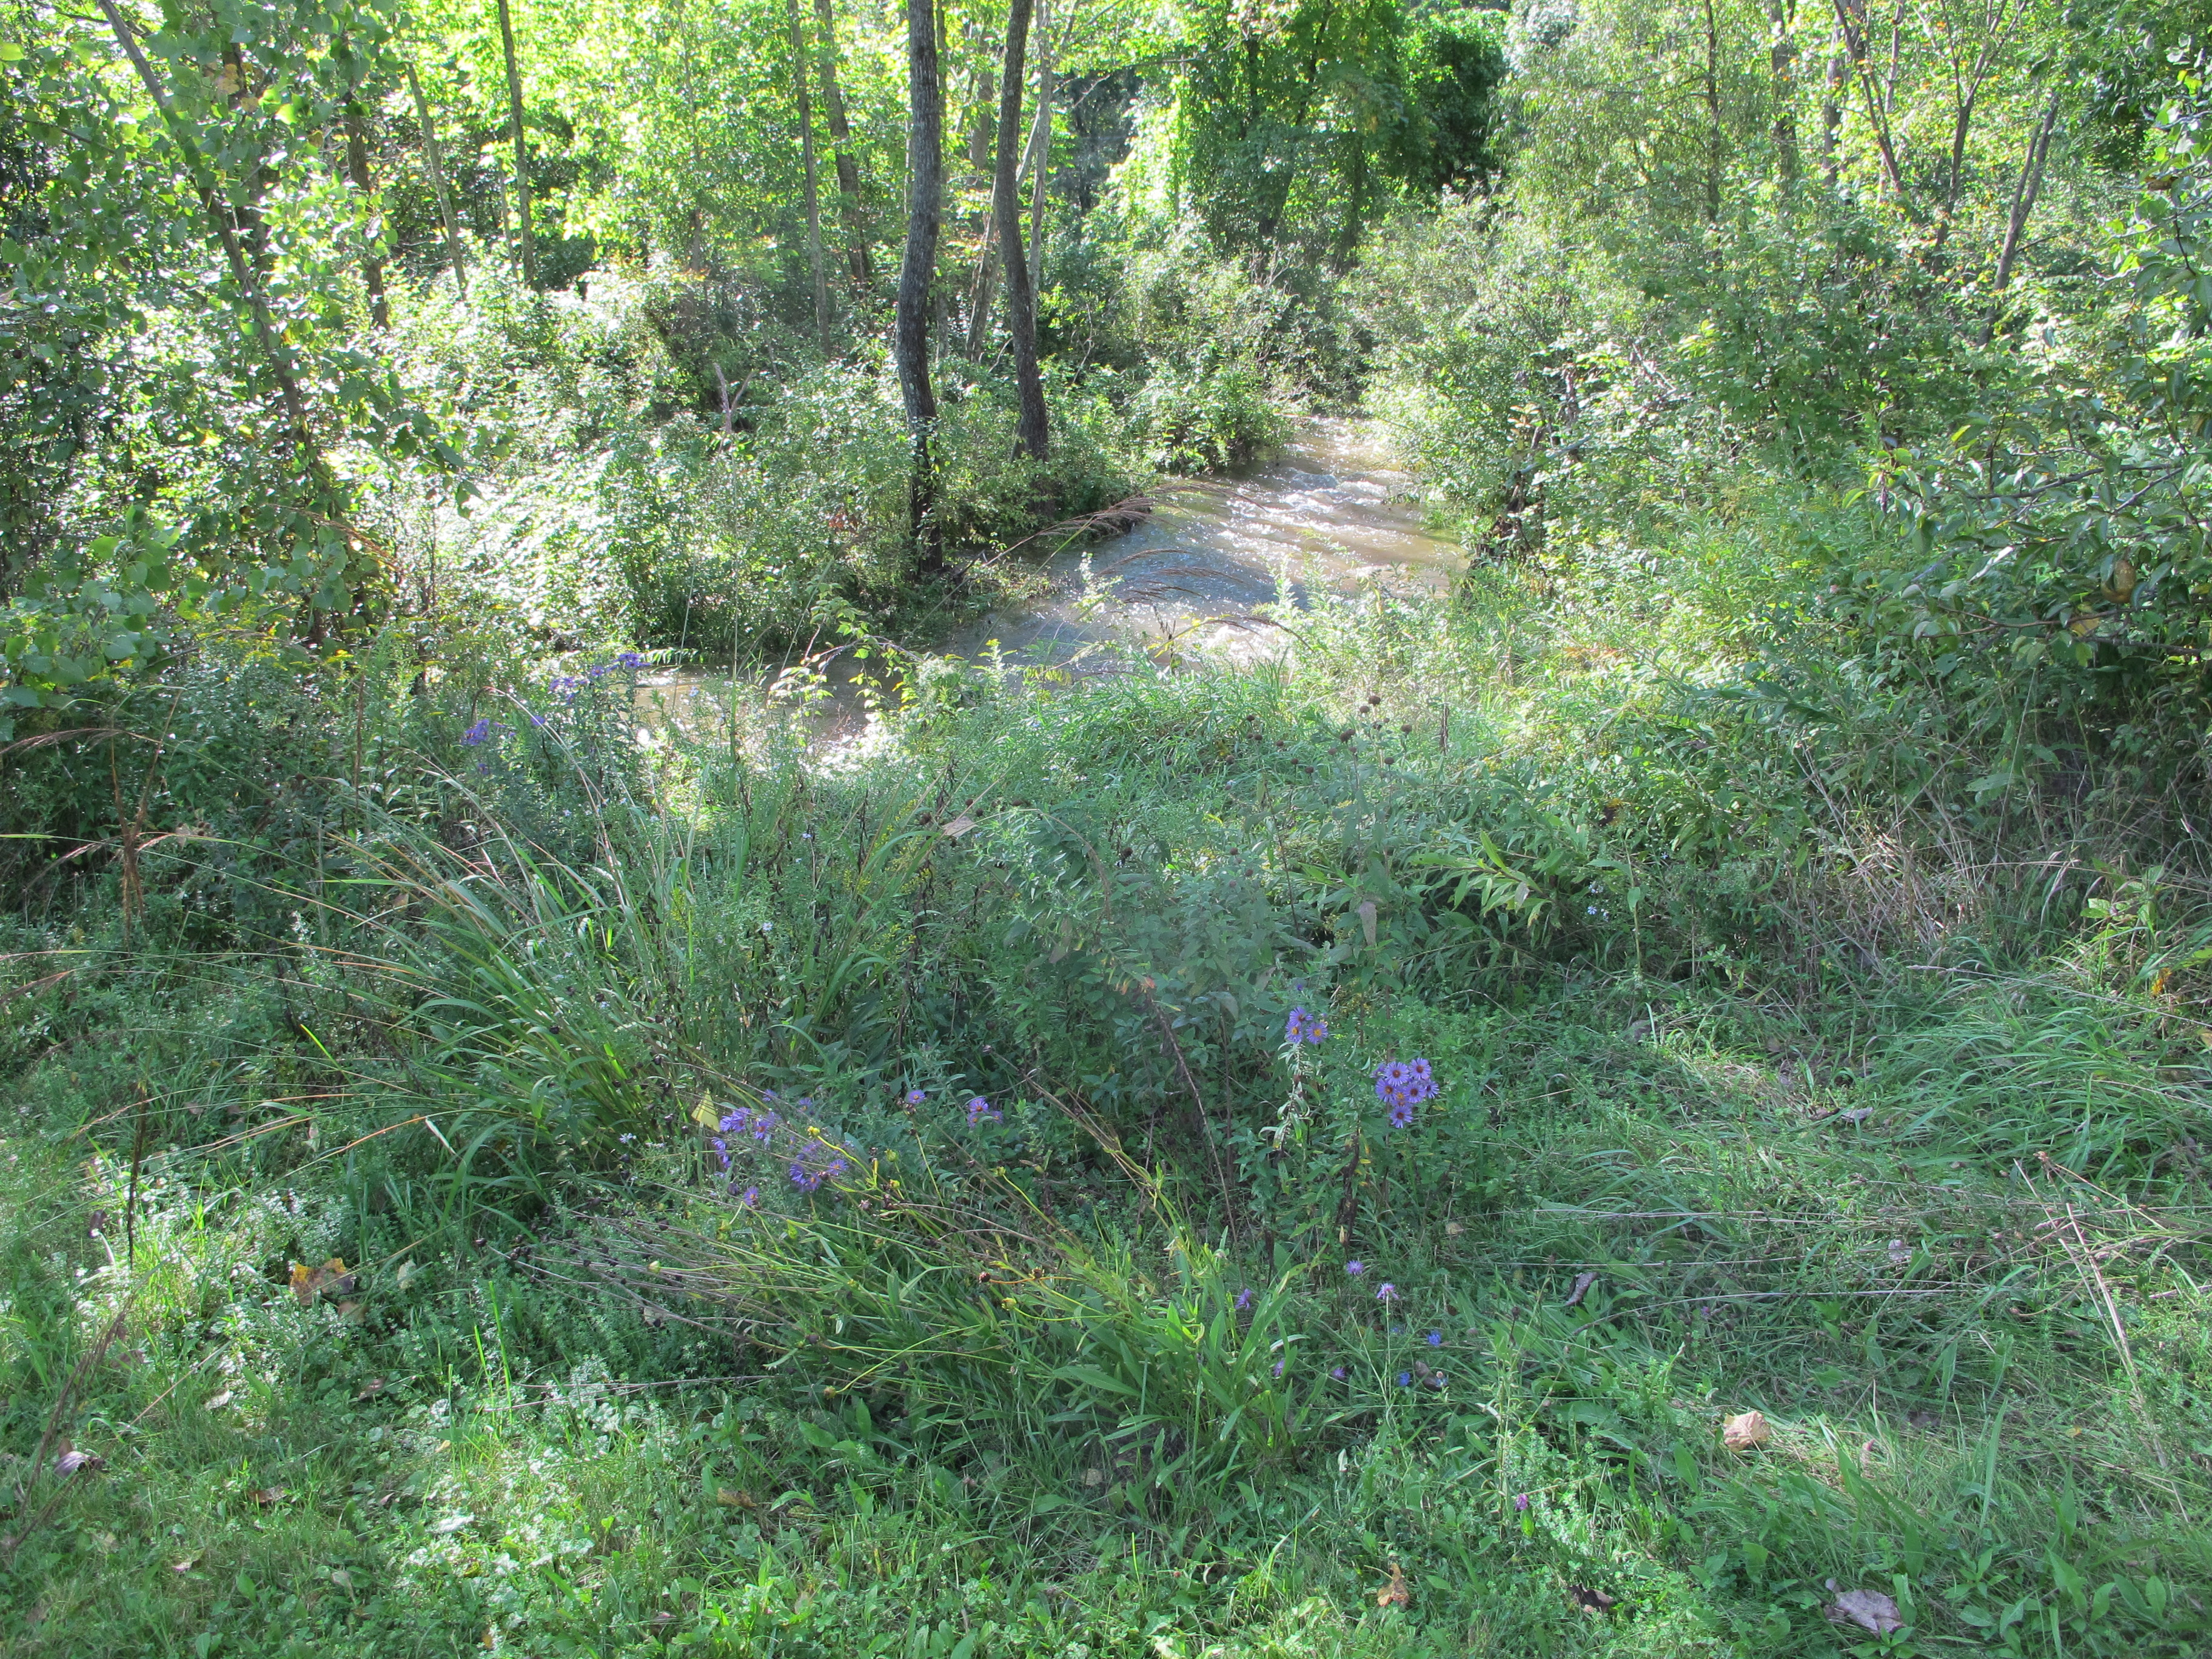 the garden bed by the creek filled with thriving plants a year later